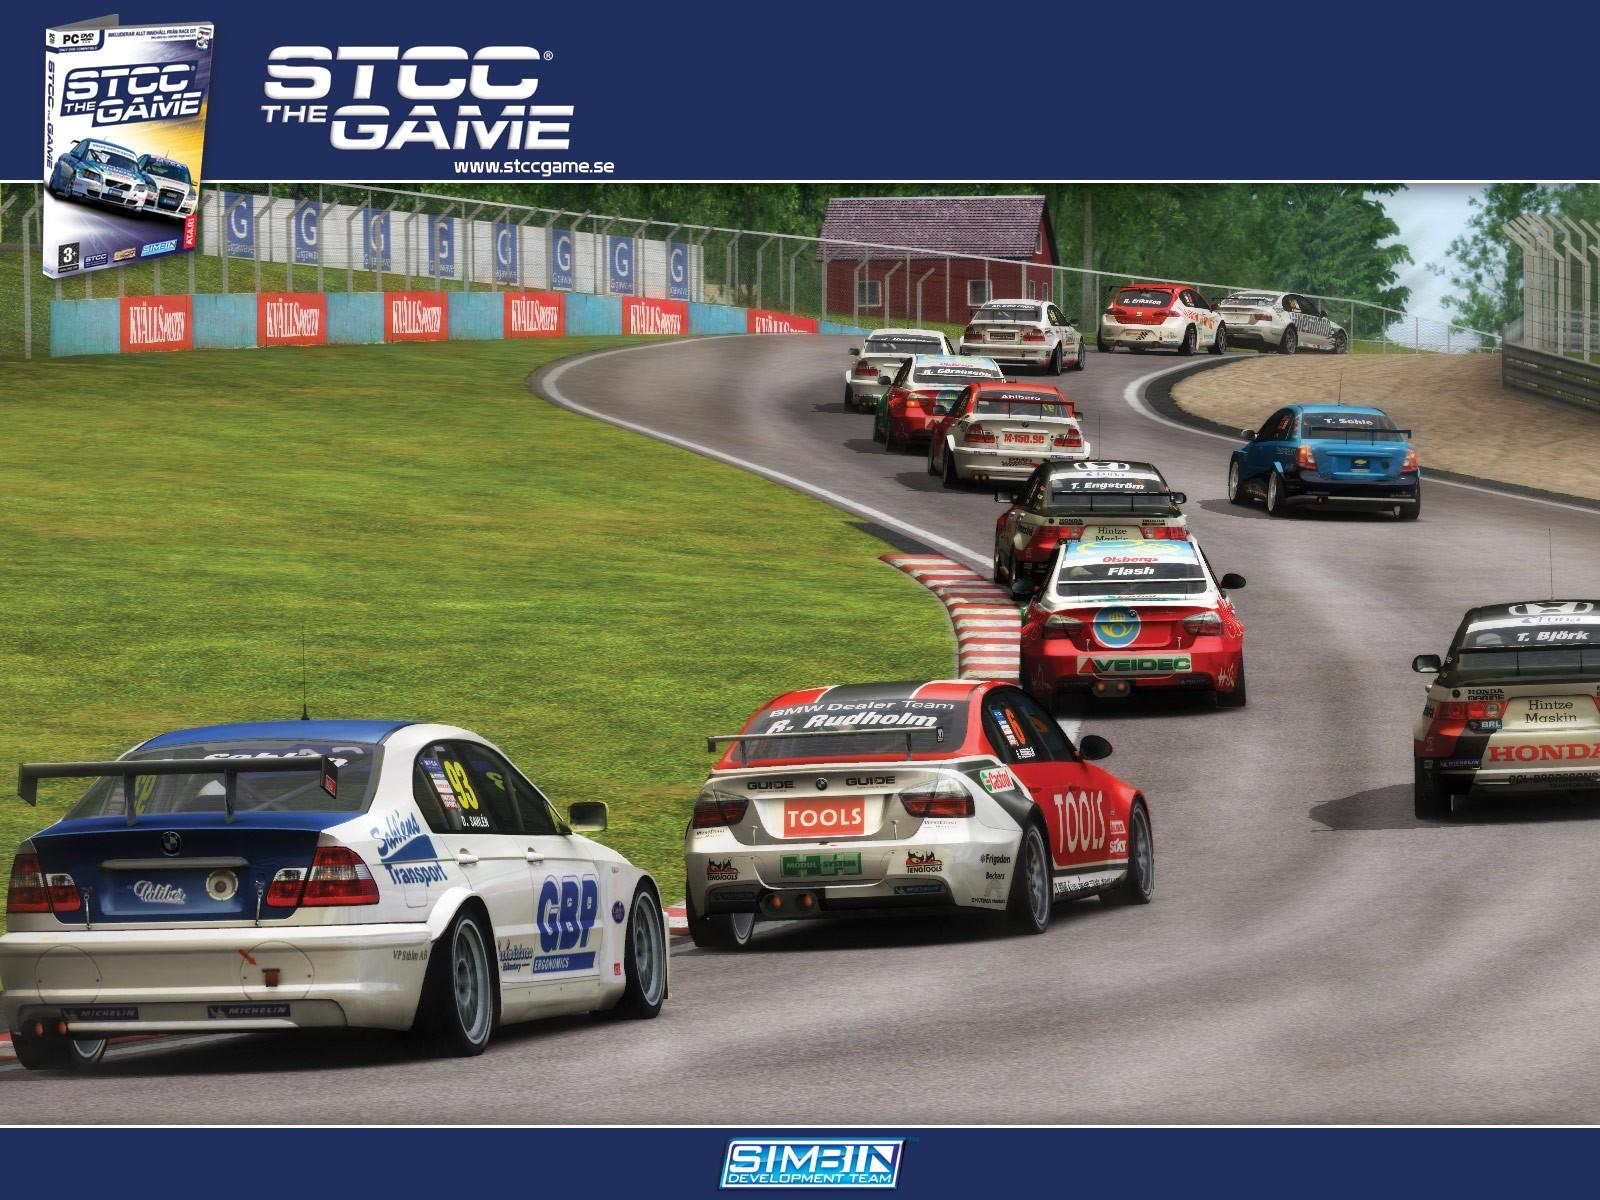 Обои STCC: The Game 1600x1200